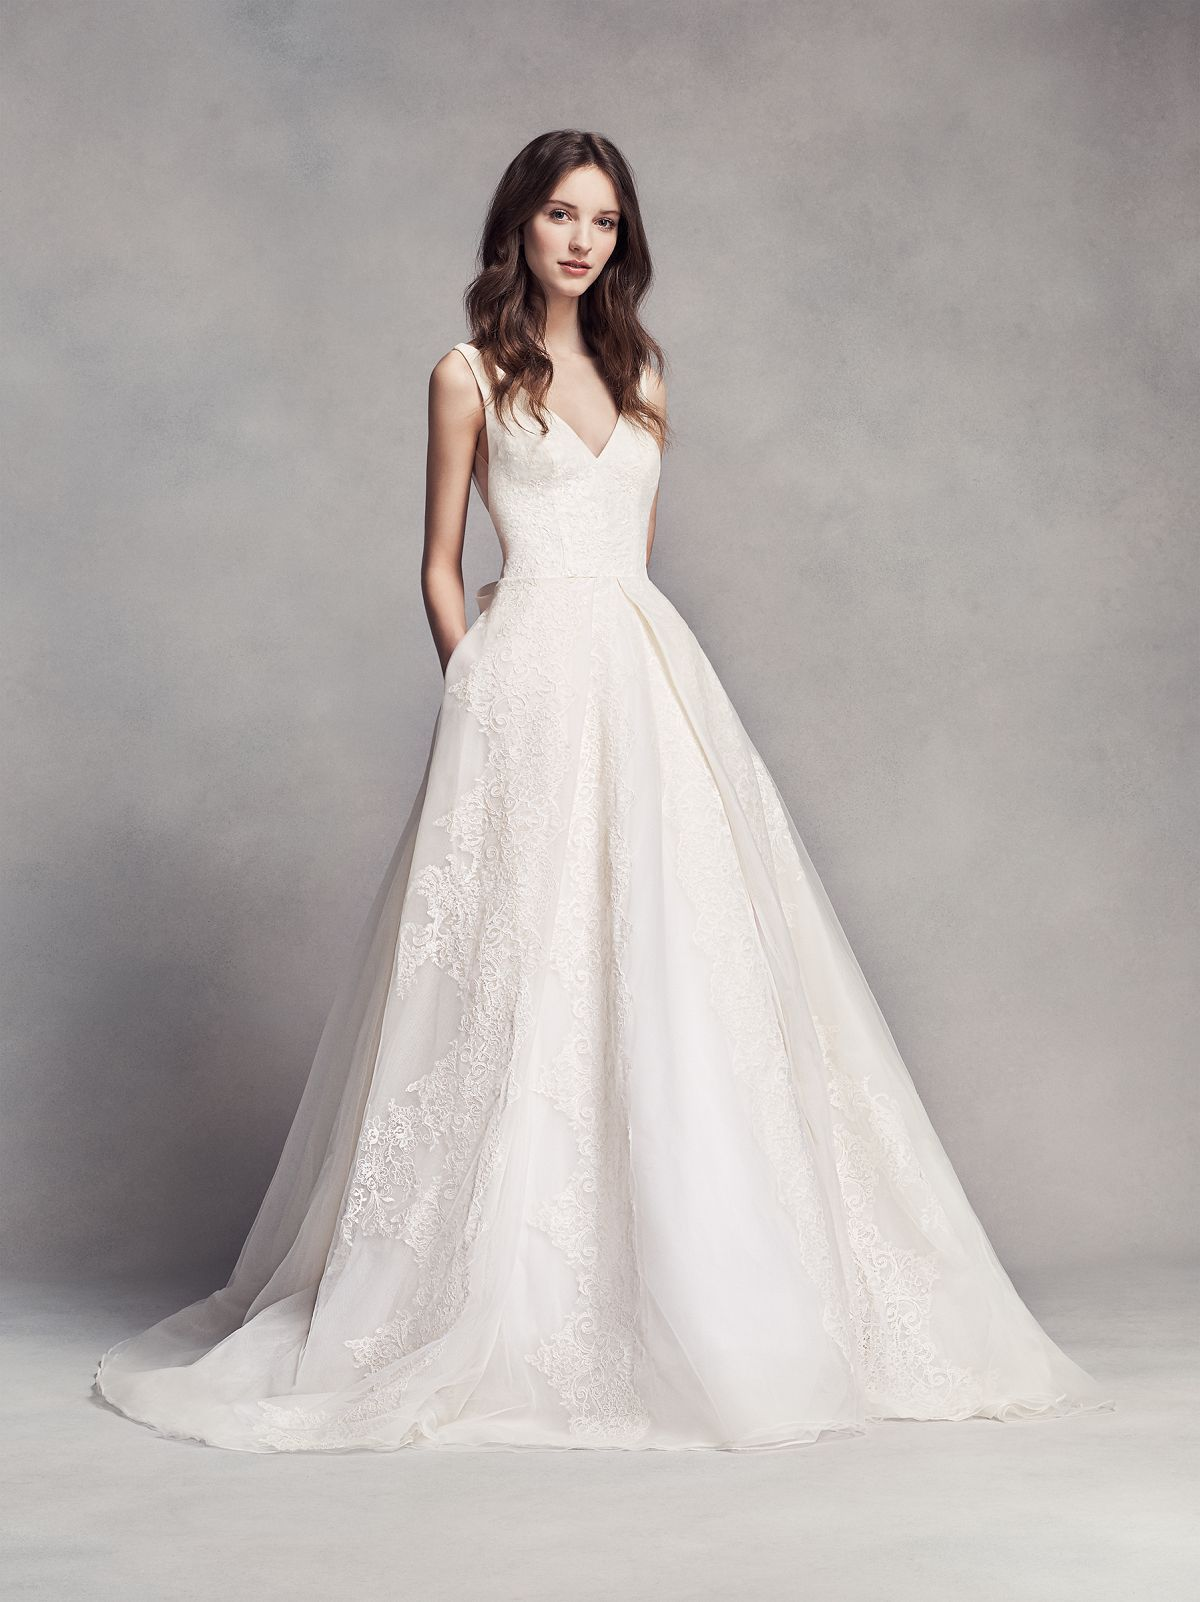 Fall wedding dresses with davidus bridal on wedding sparrow